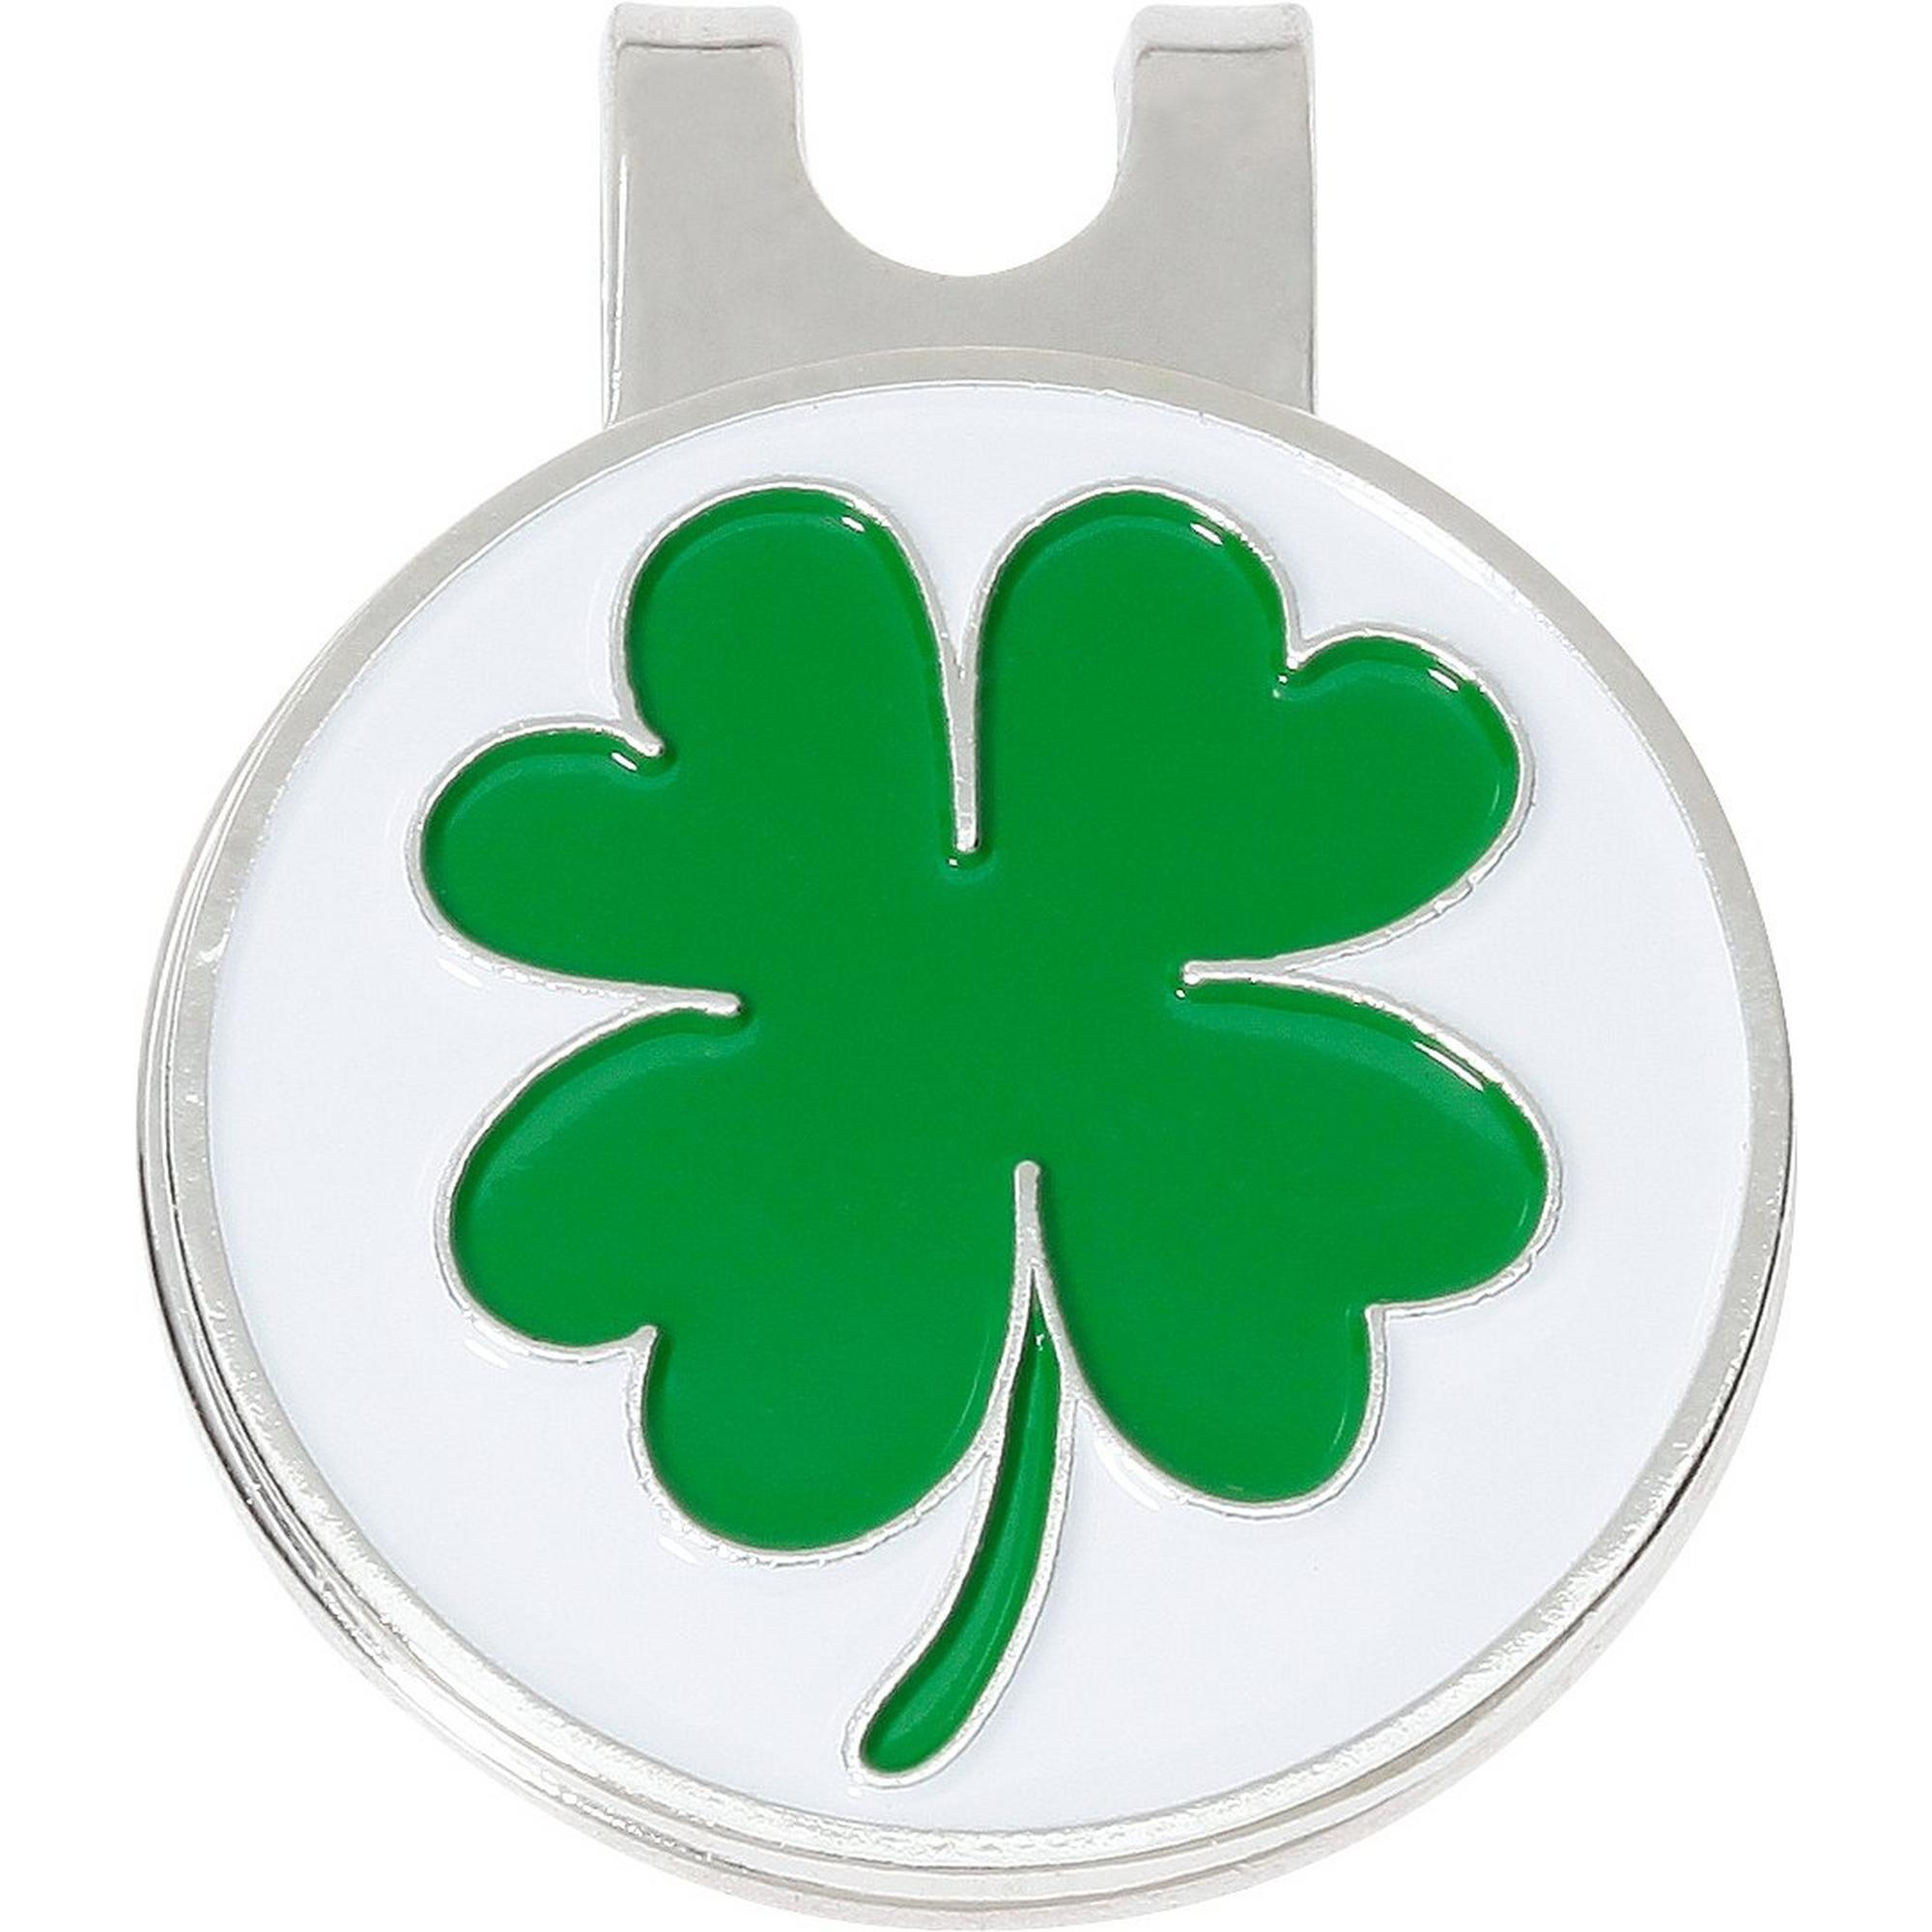 4 Leaf Clover Ball Marker with Cap Clip